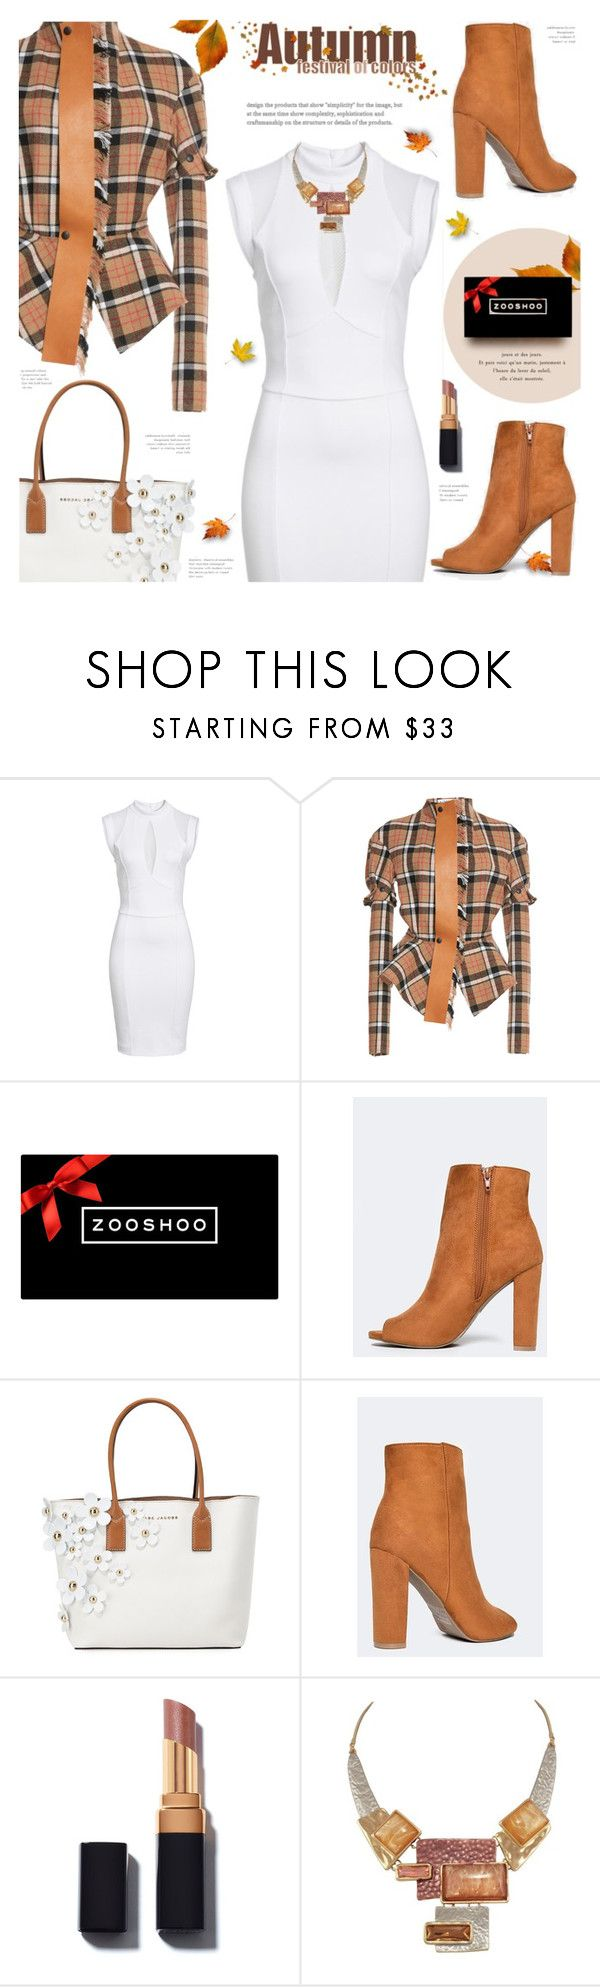 """""""Zooshoo: Winter Ankle Booties"""" by voguebits ❤ liked on Polyvore featuring Sentimental New York, Loewe, Marc Jacobs, Fall, autumn, chicstyle and falltrend"""